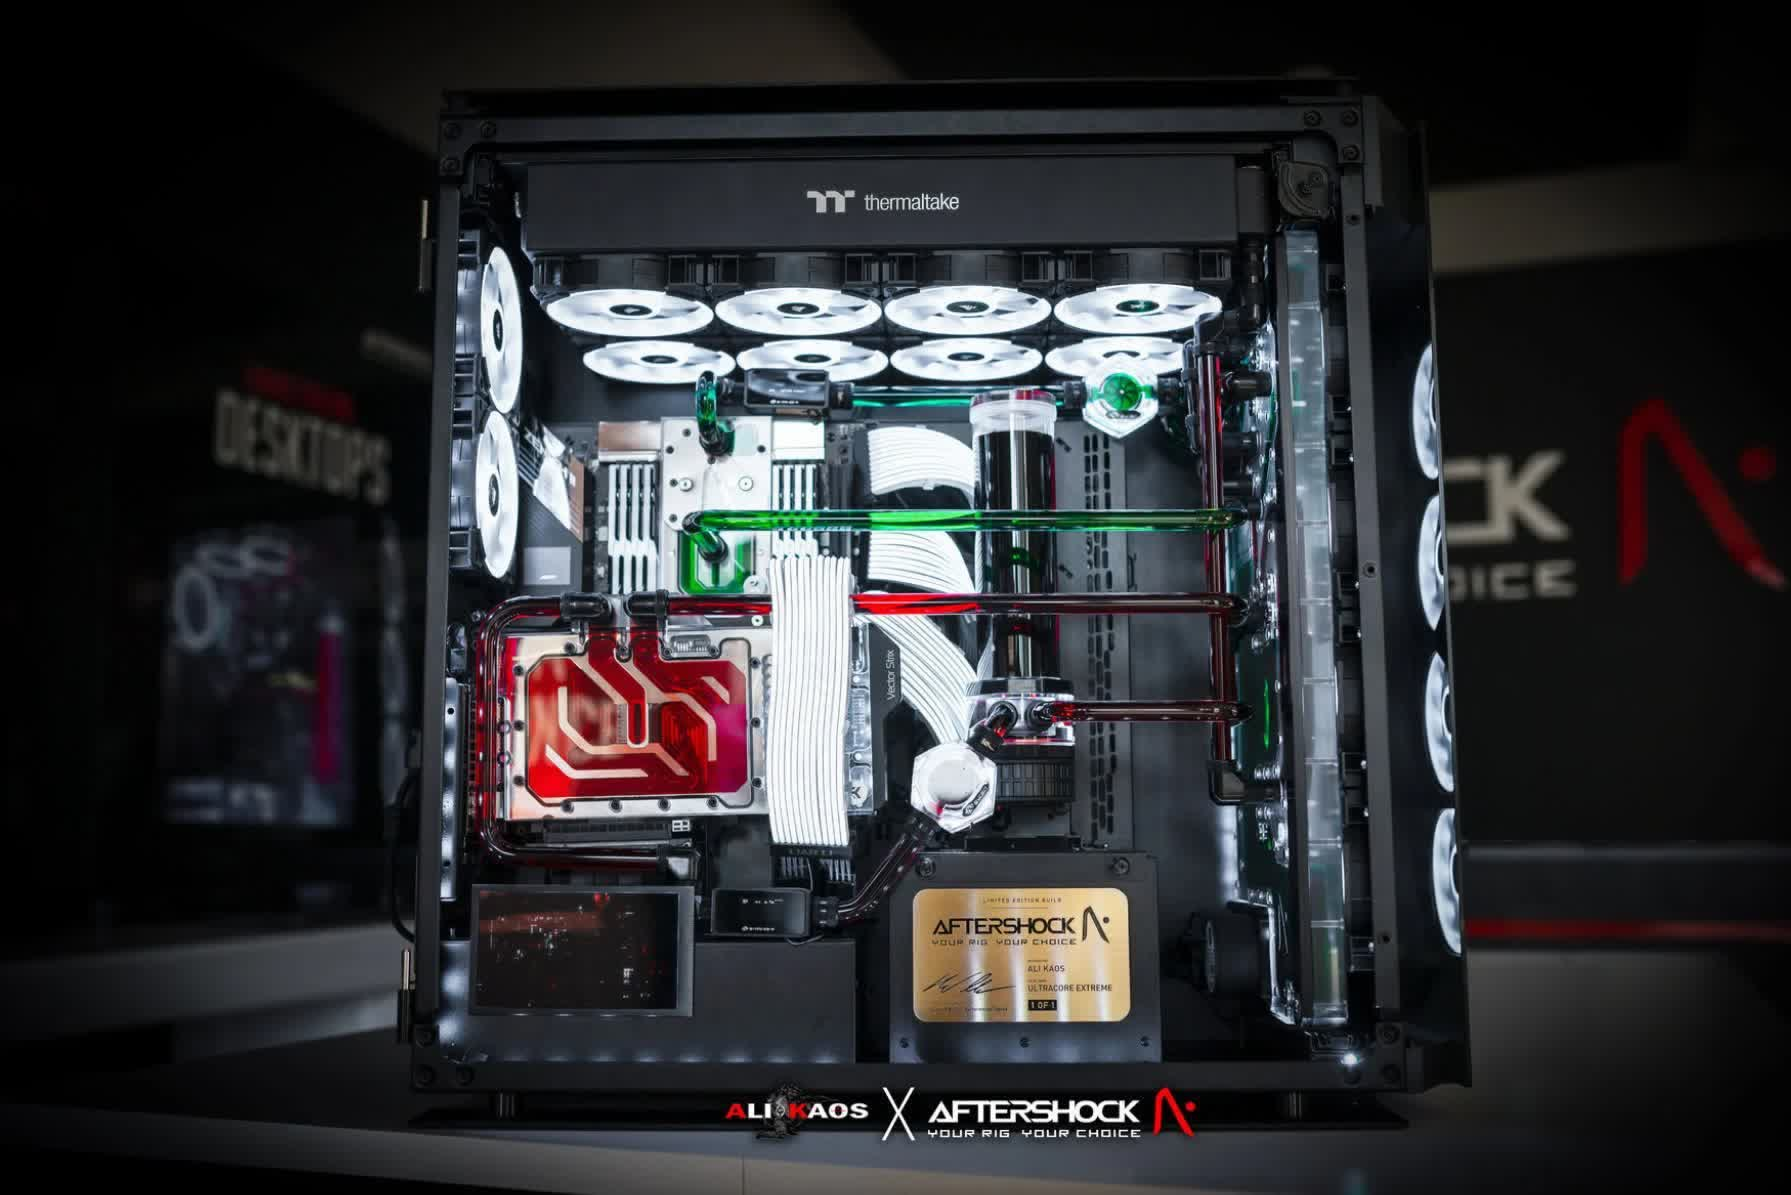 This $23,000 custom PC features two RTX 3090 cards, an AMD 3990X Threadripper, and 128GB RAM